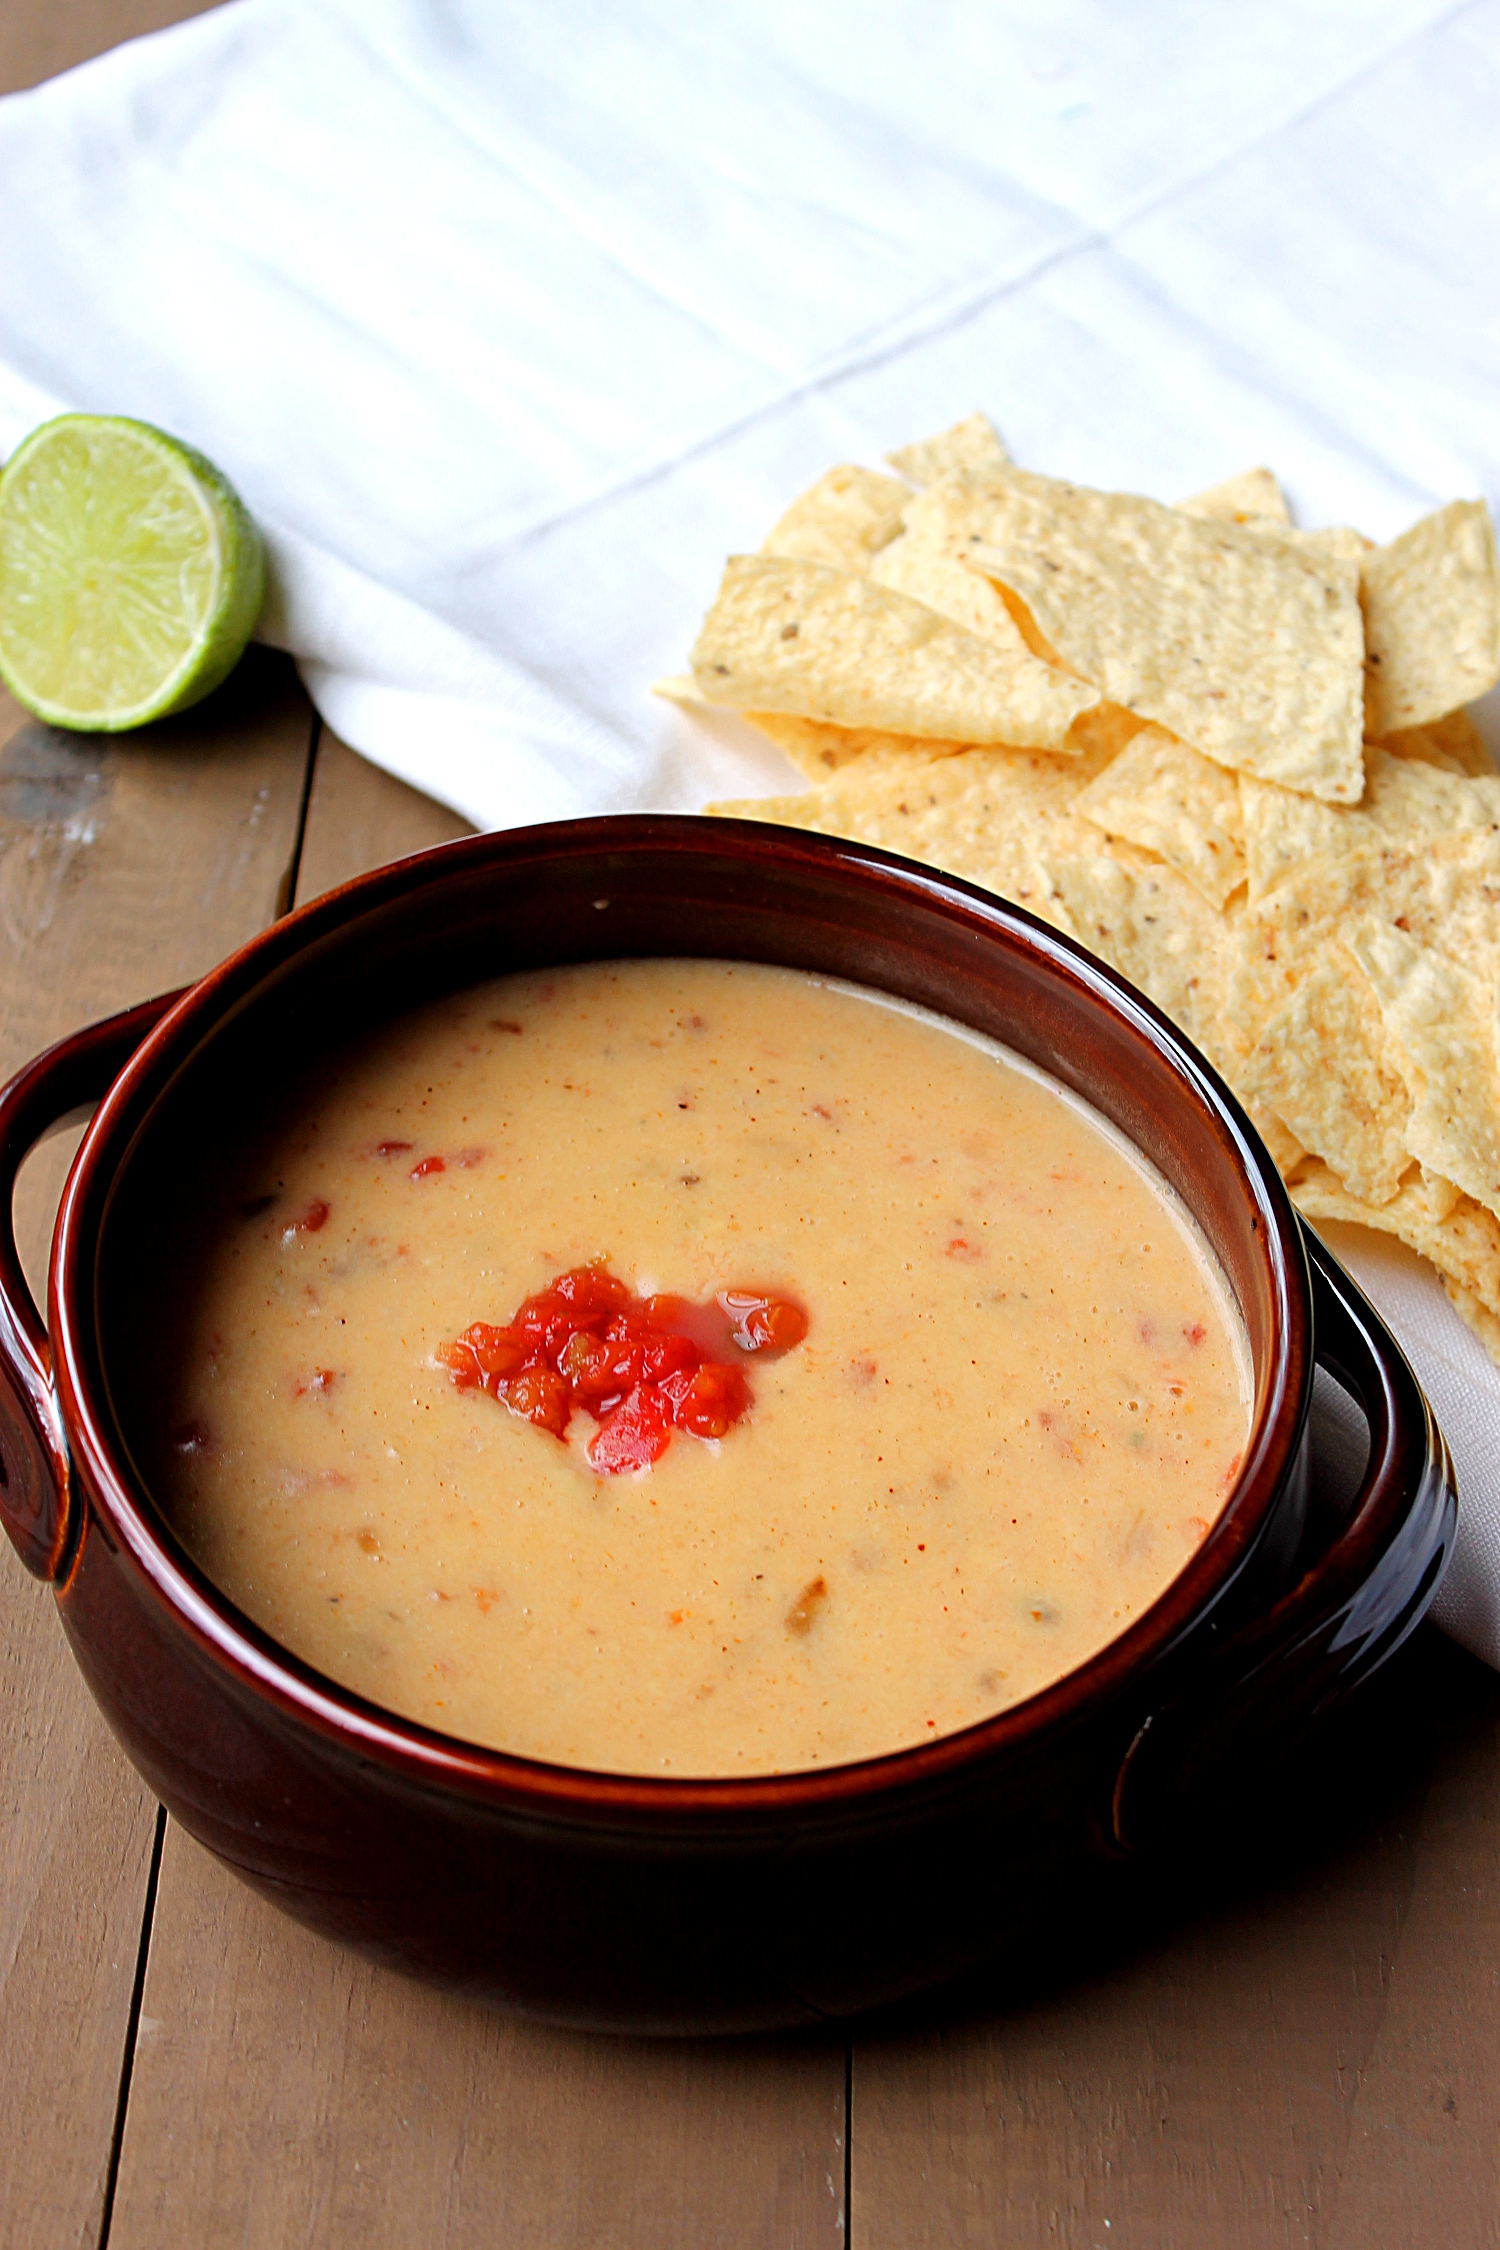 Spicy Cheese Dip via Fabtastic Eats #cheese #dip #spicy